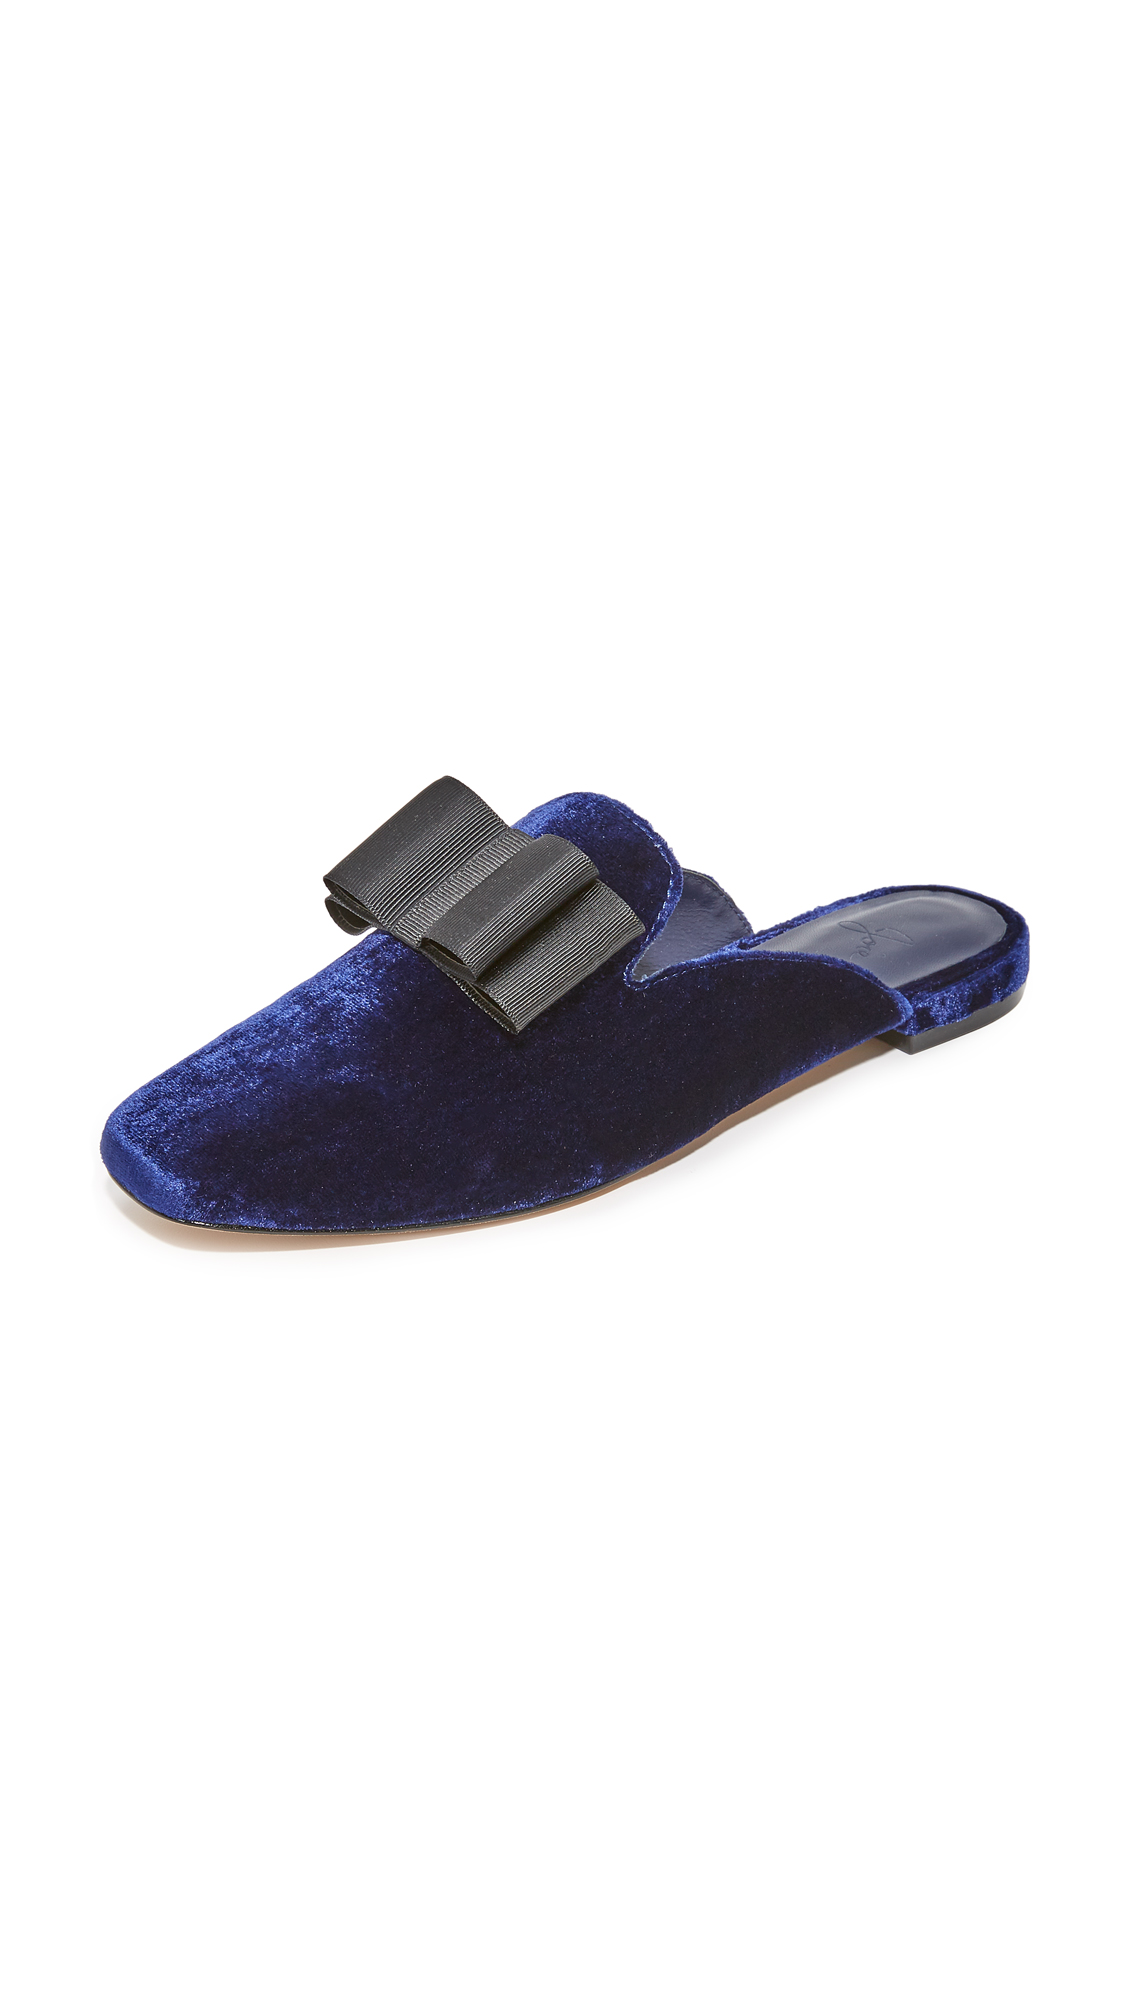 Joie Jean Bow Mules - Navy